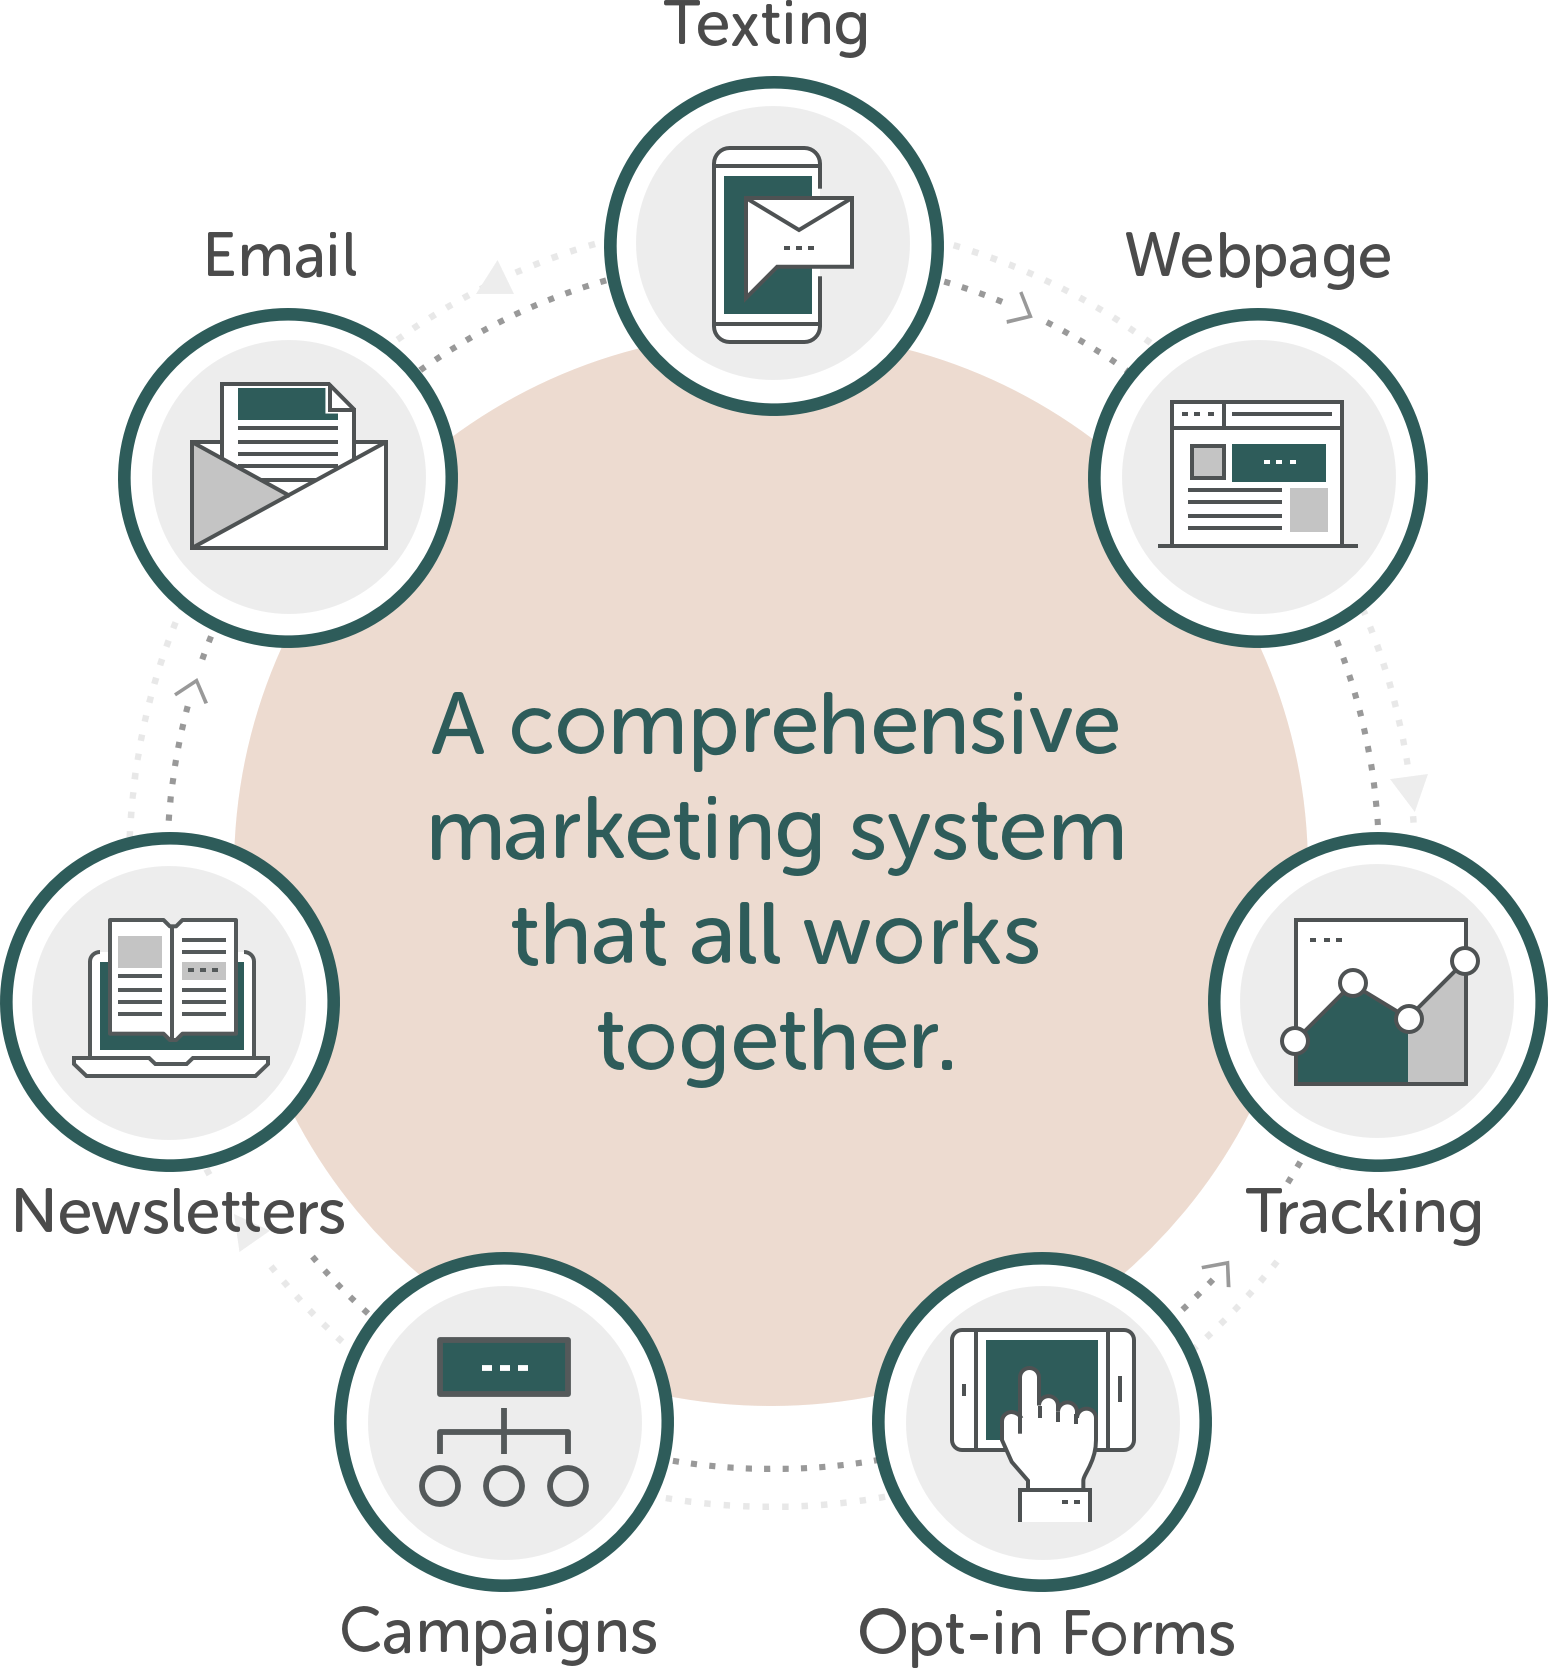 A comprehensive marketing system that all works together